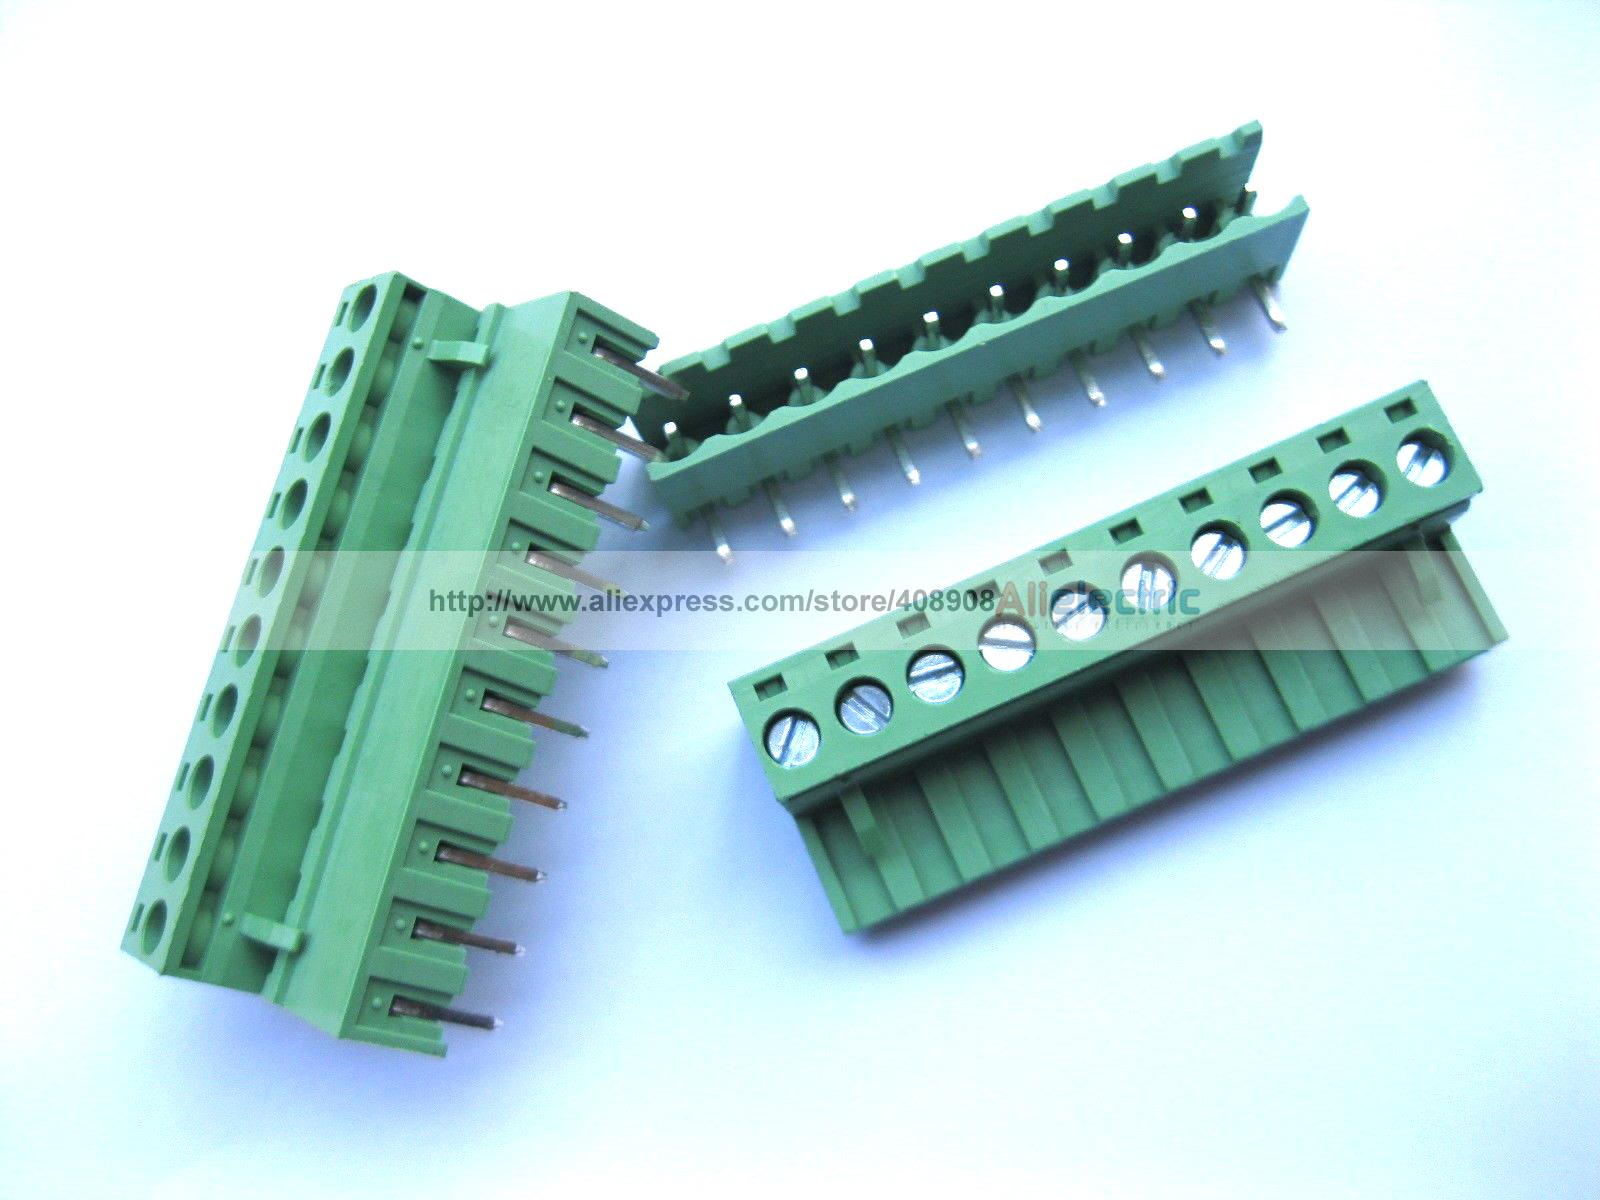 40 Pcs 5.08mm Angle 10 Pin Screw Terminal Block Connector Pluggable Type Green 30 pcs 5 08mm angle 16 pin screw terminal block connector pluggable type green